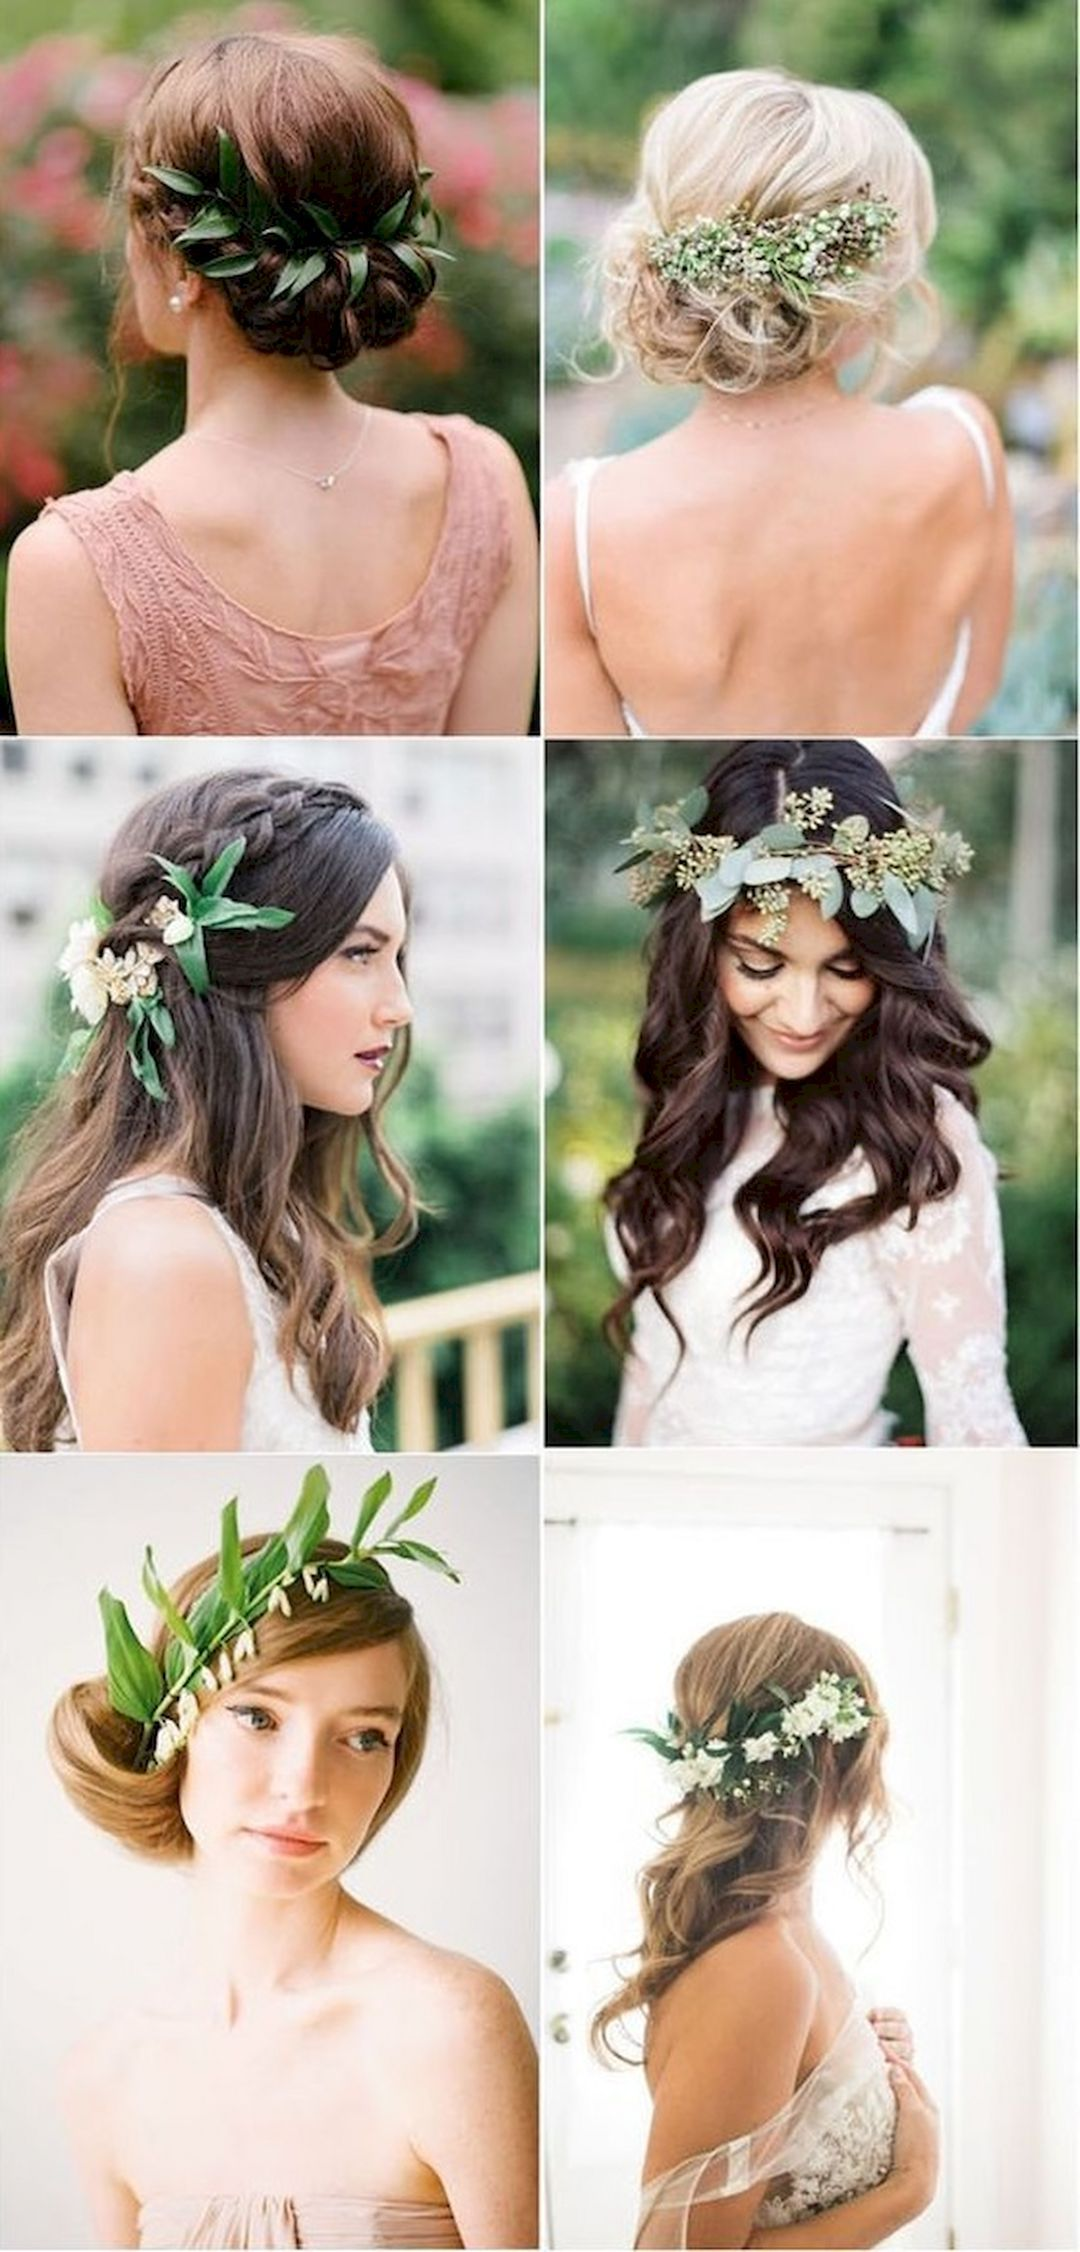 Most Popular Wedding Hairstyle That Will Make The Bridal